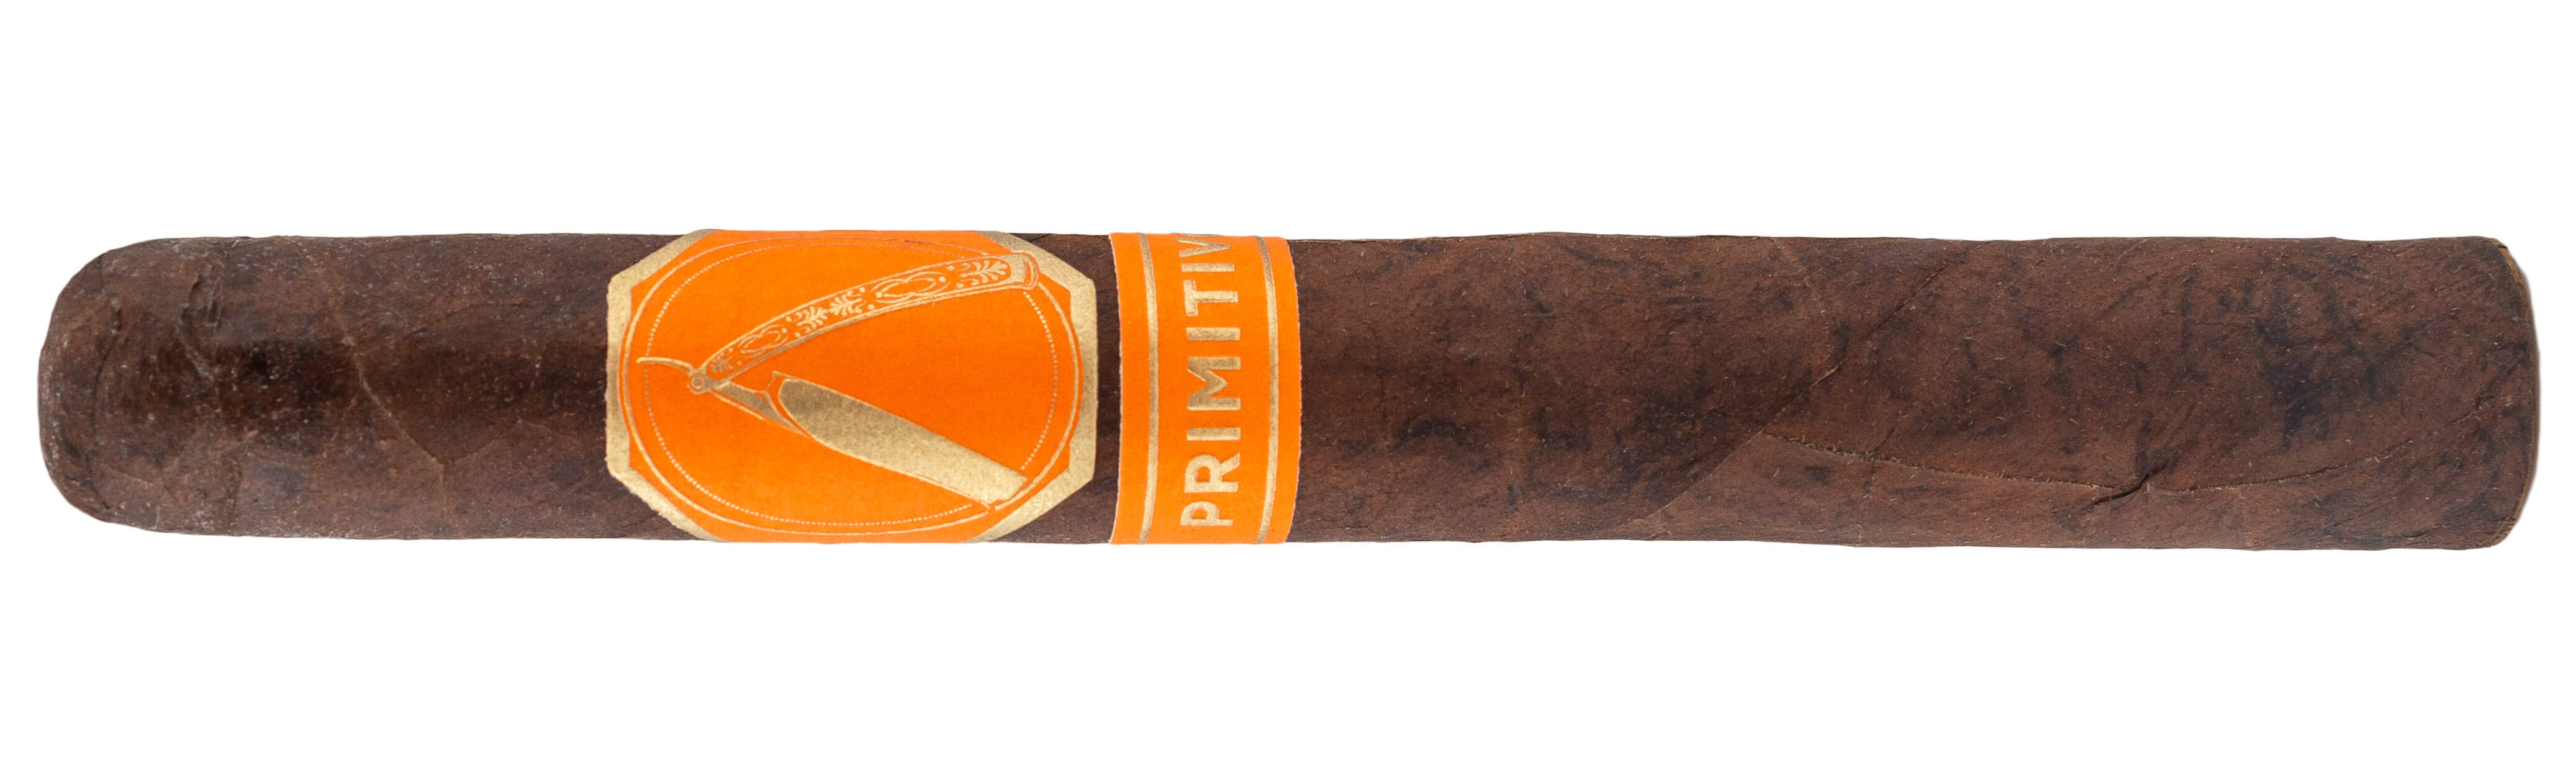 Blind Cigar Review: La Barba | Ricochet (Primitivo) 5 3/4 x 46